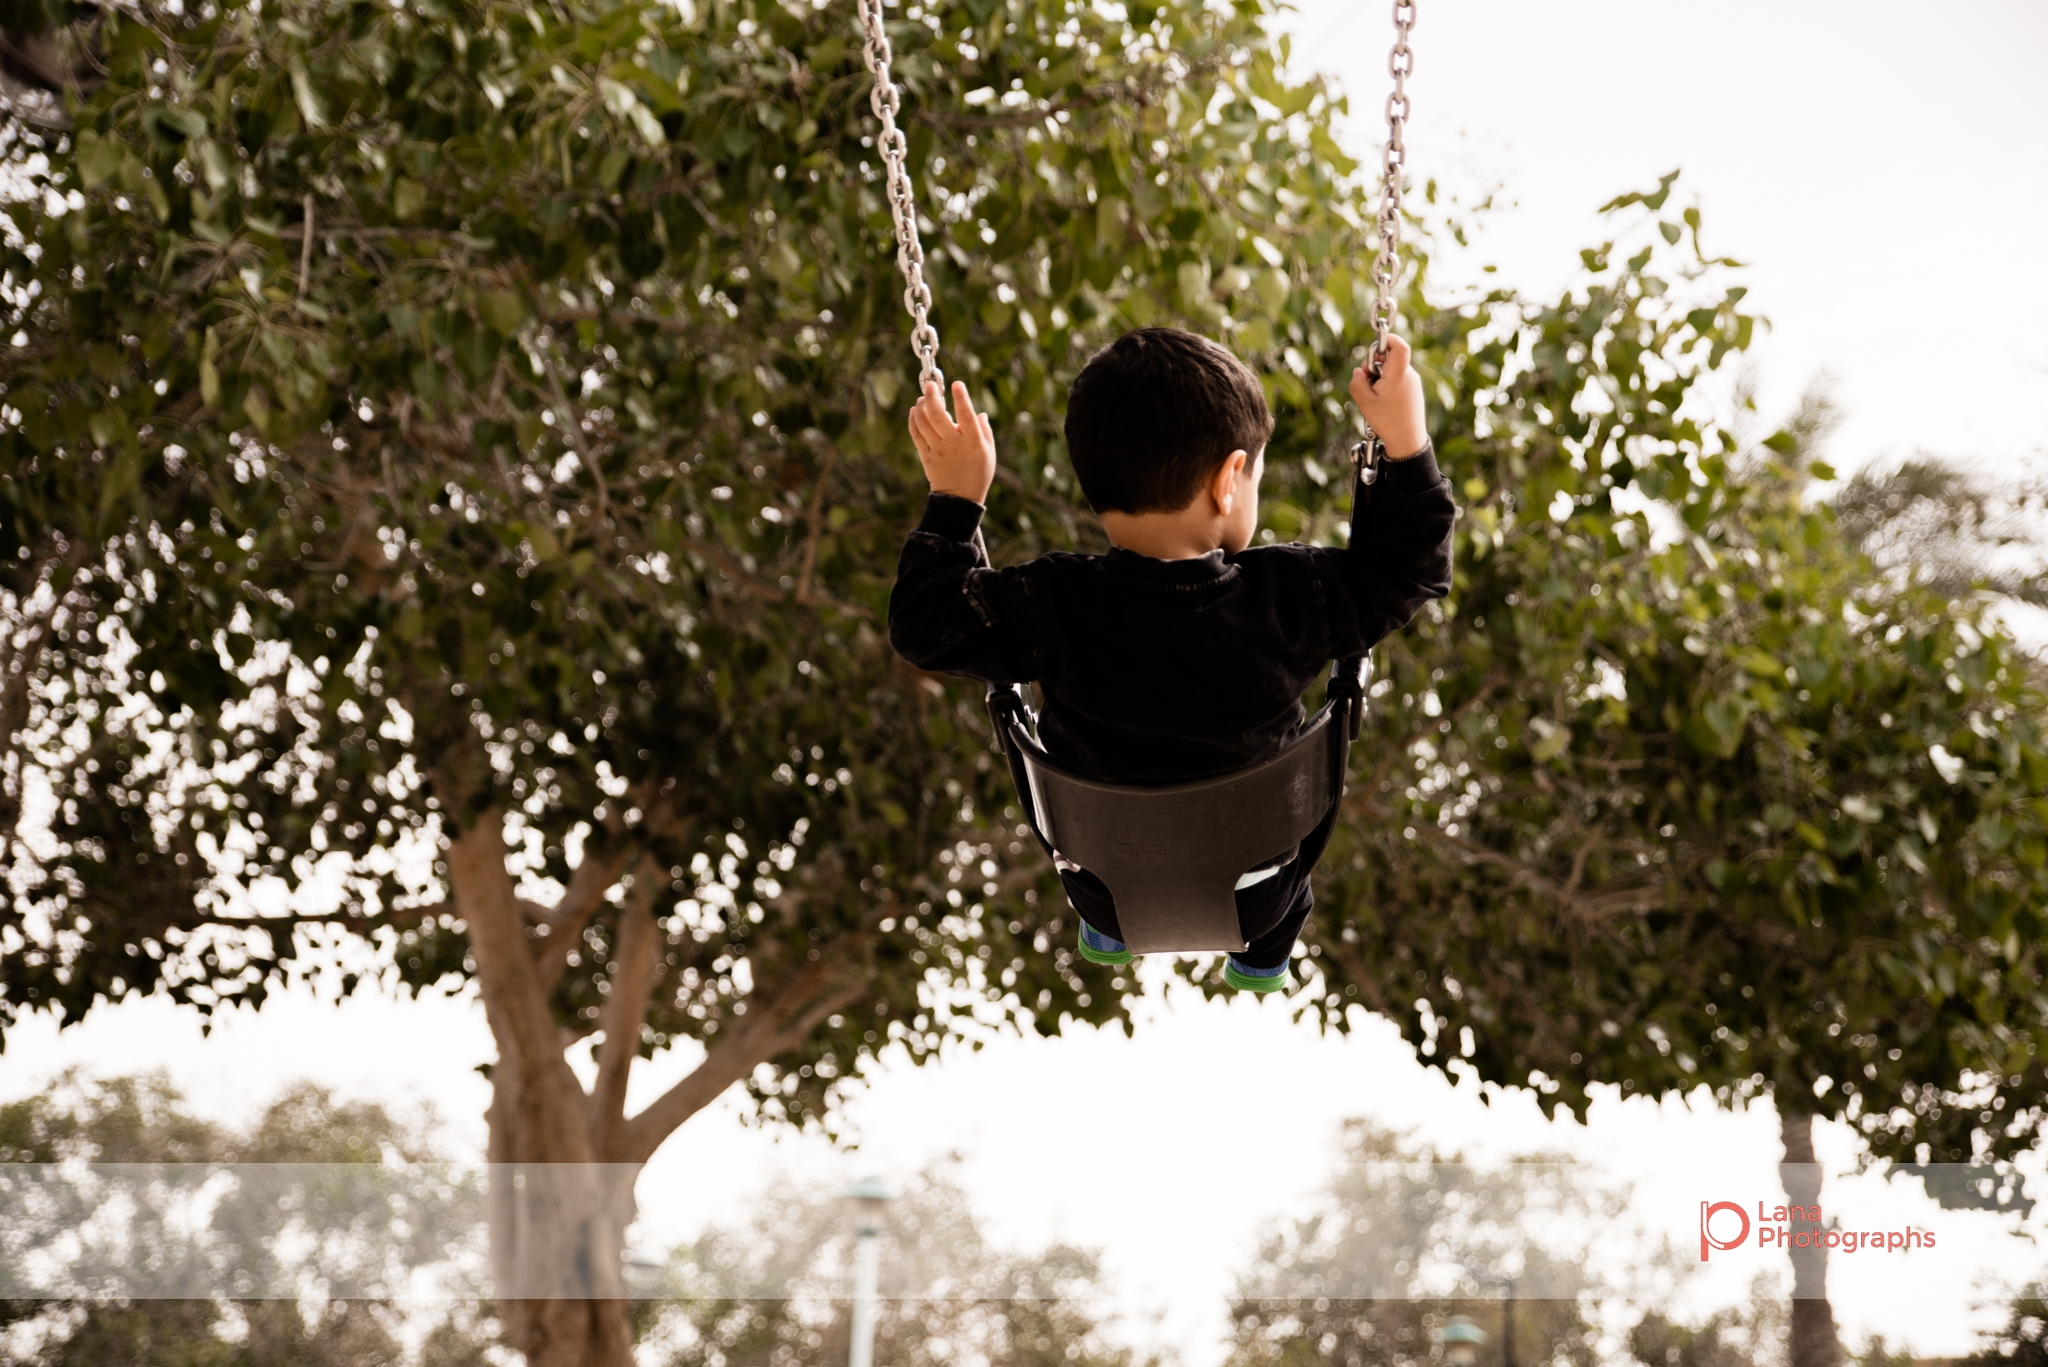 Dubai Family Photographer little boy swinging on the swings with his back to the camera in Umm suqeim park Dubai